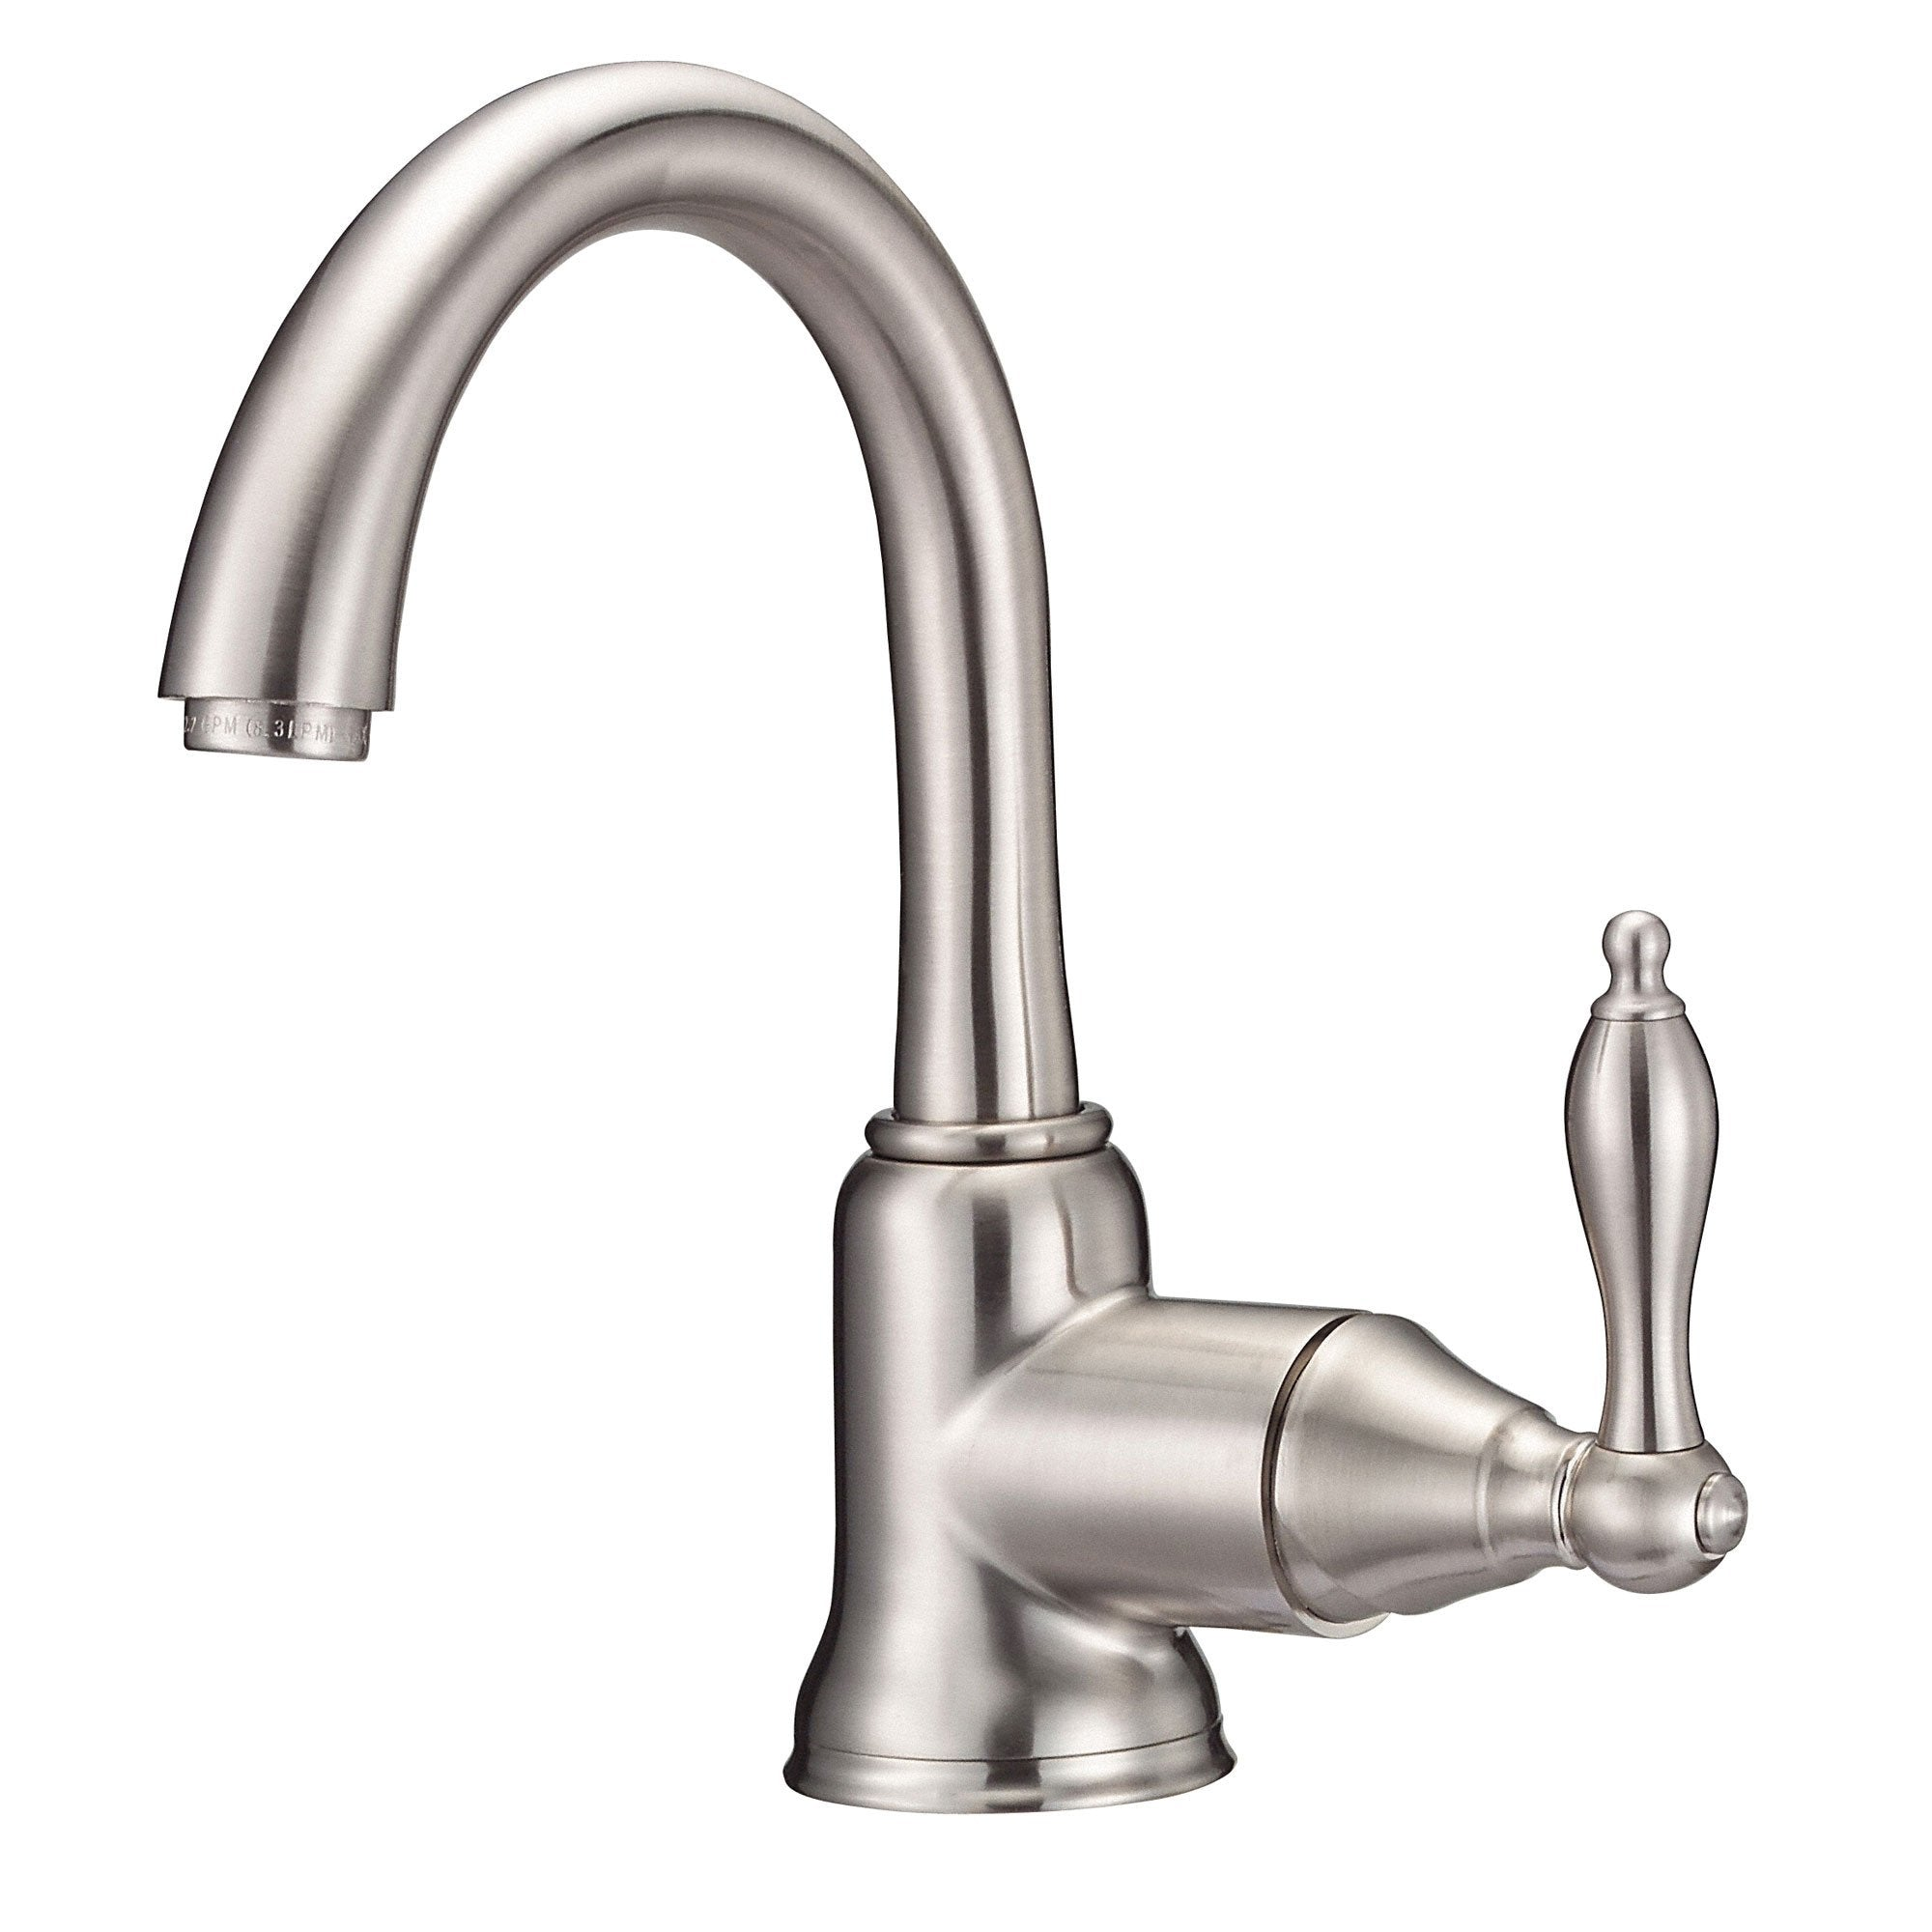 Danze Fairmont Brushed Nickel Single Handle Bathroom Centerset Faucet w/ Drain